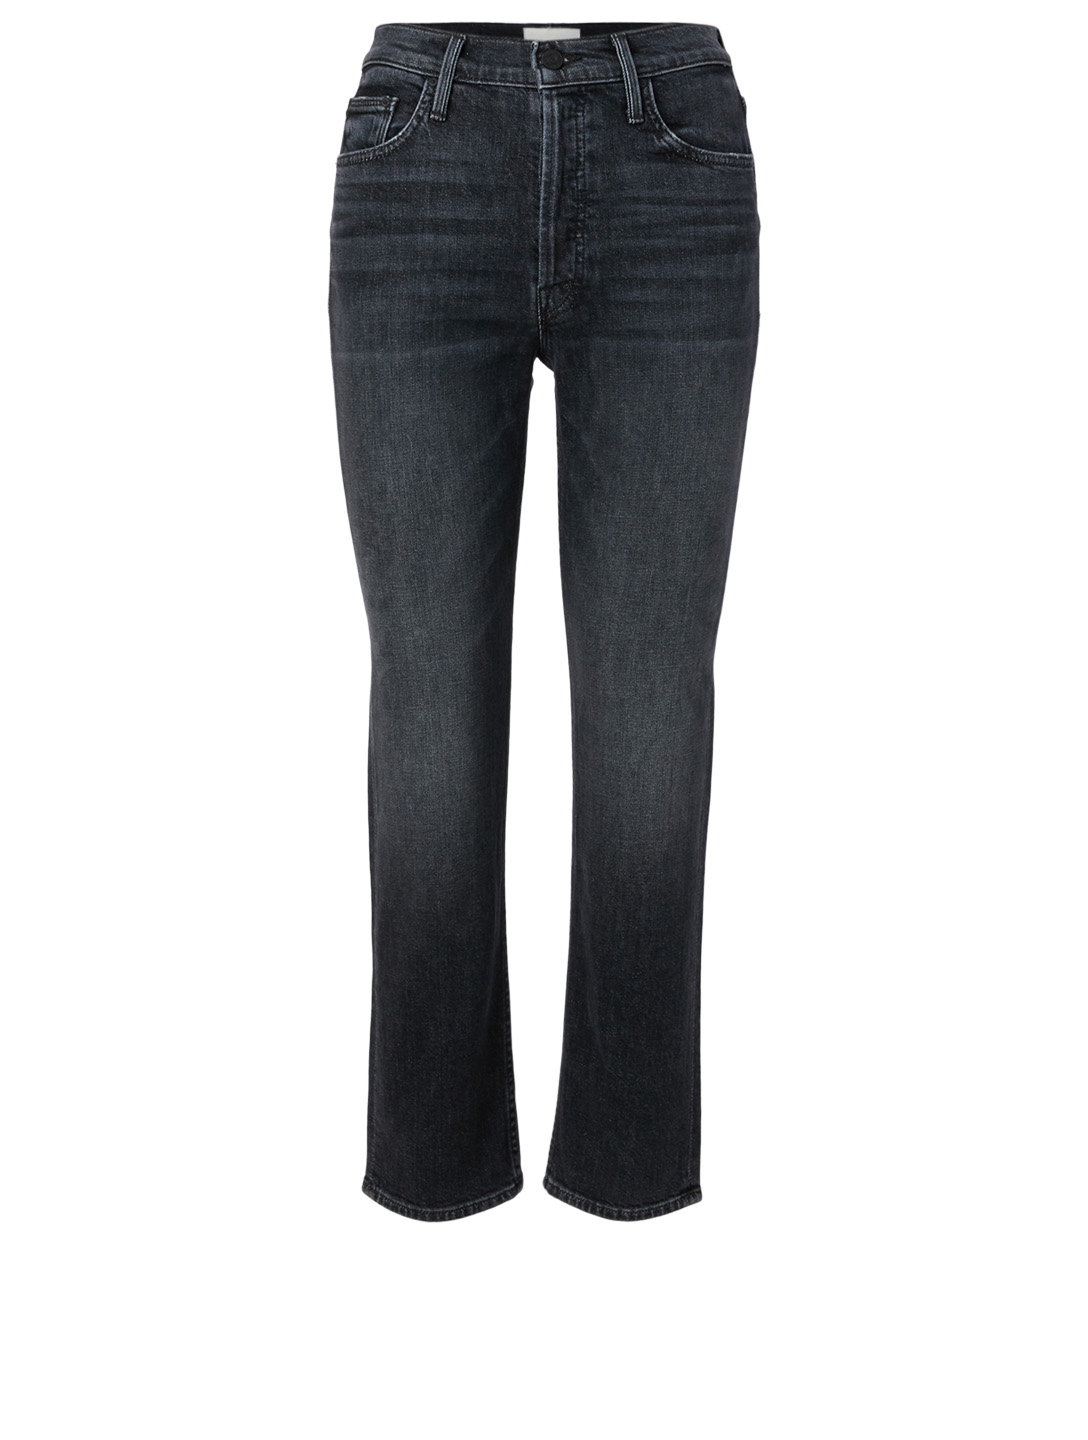 MOTHER Tomcat Ankle Jeans Women's Grey